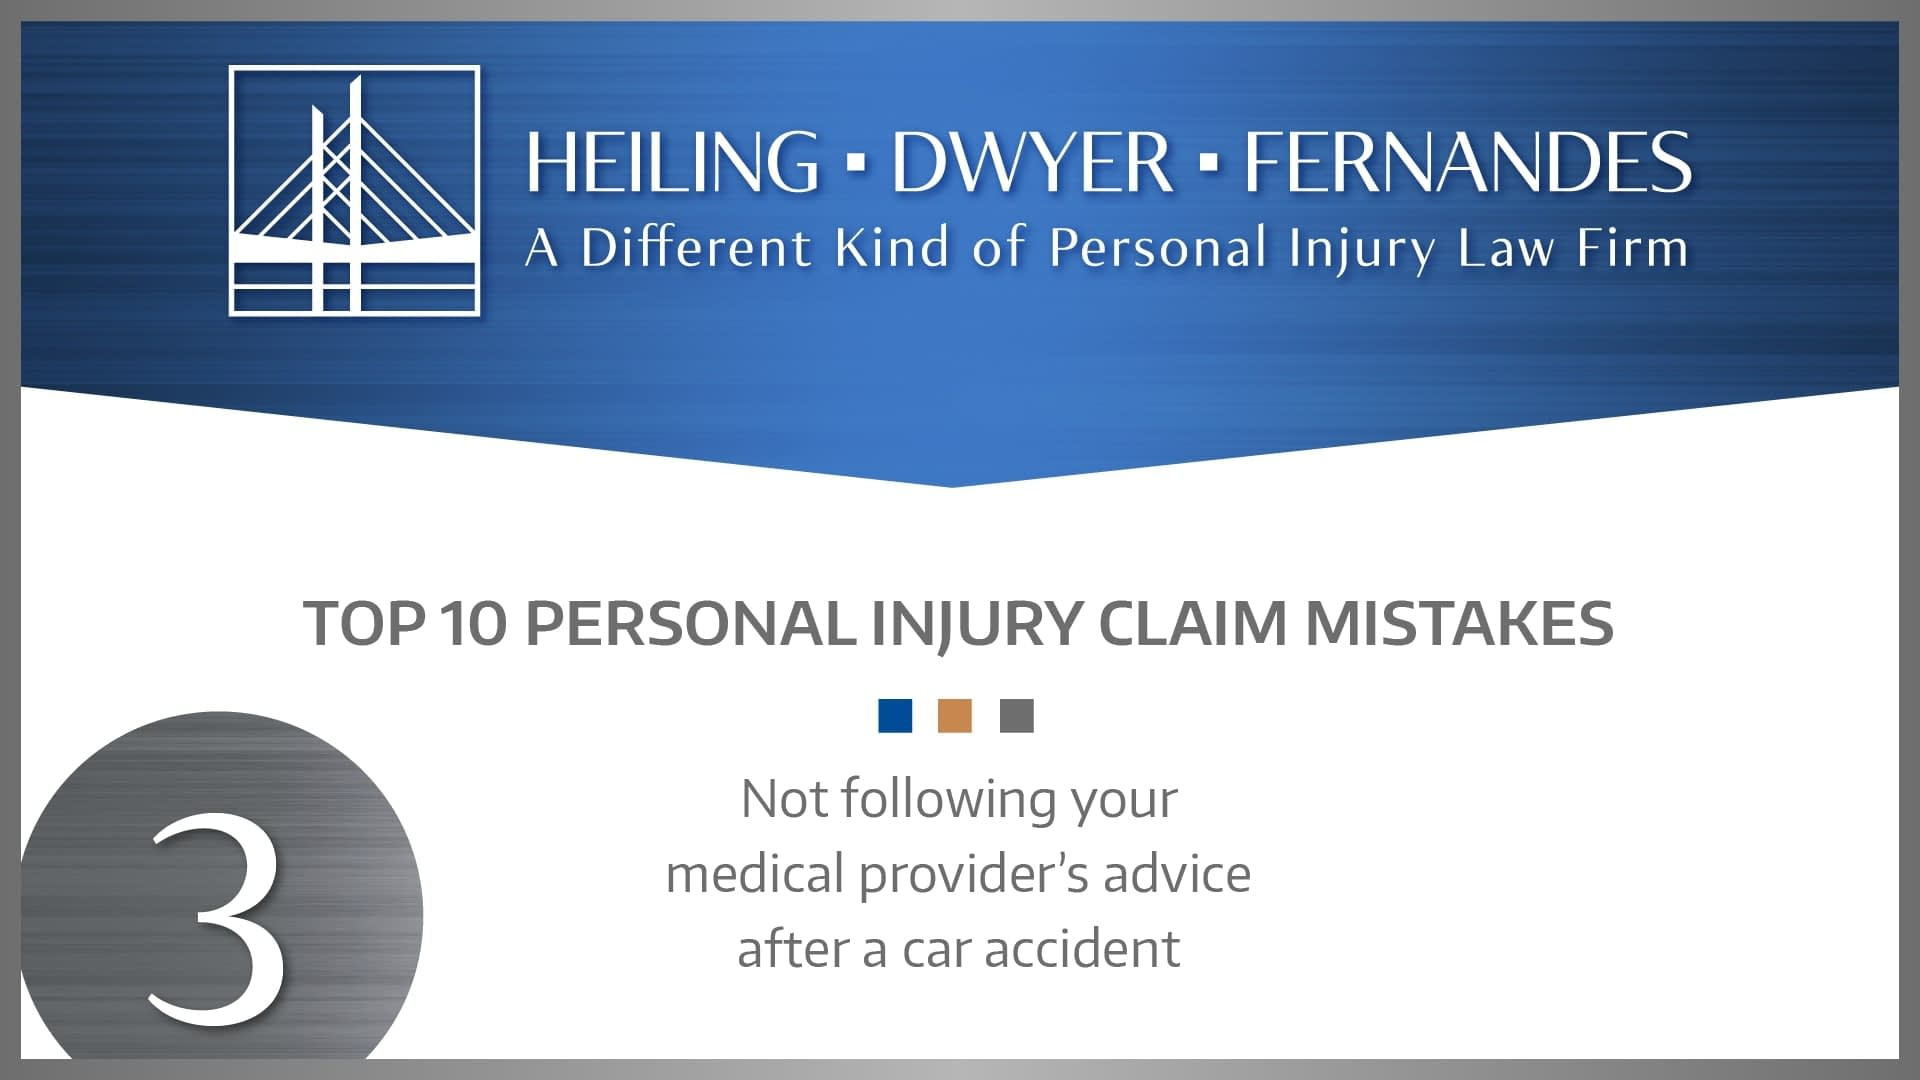 #3 MISTAKE: Not following your medical provider's advice after a car accident.